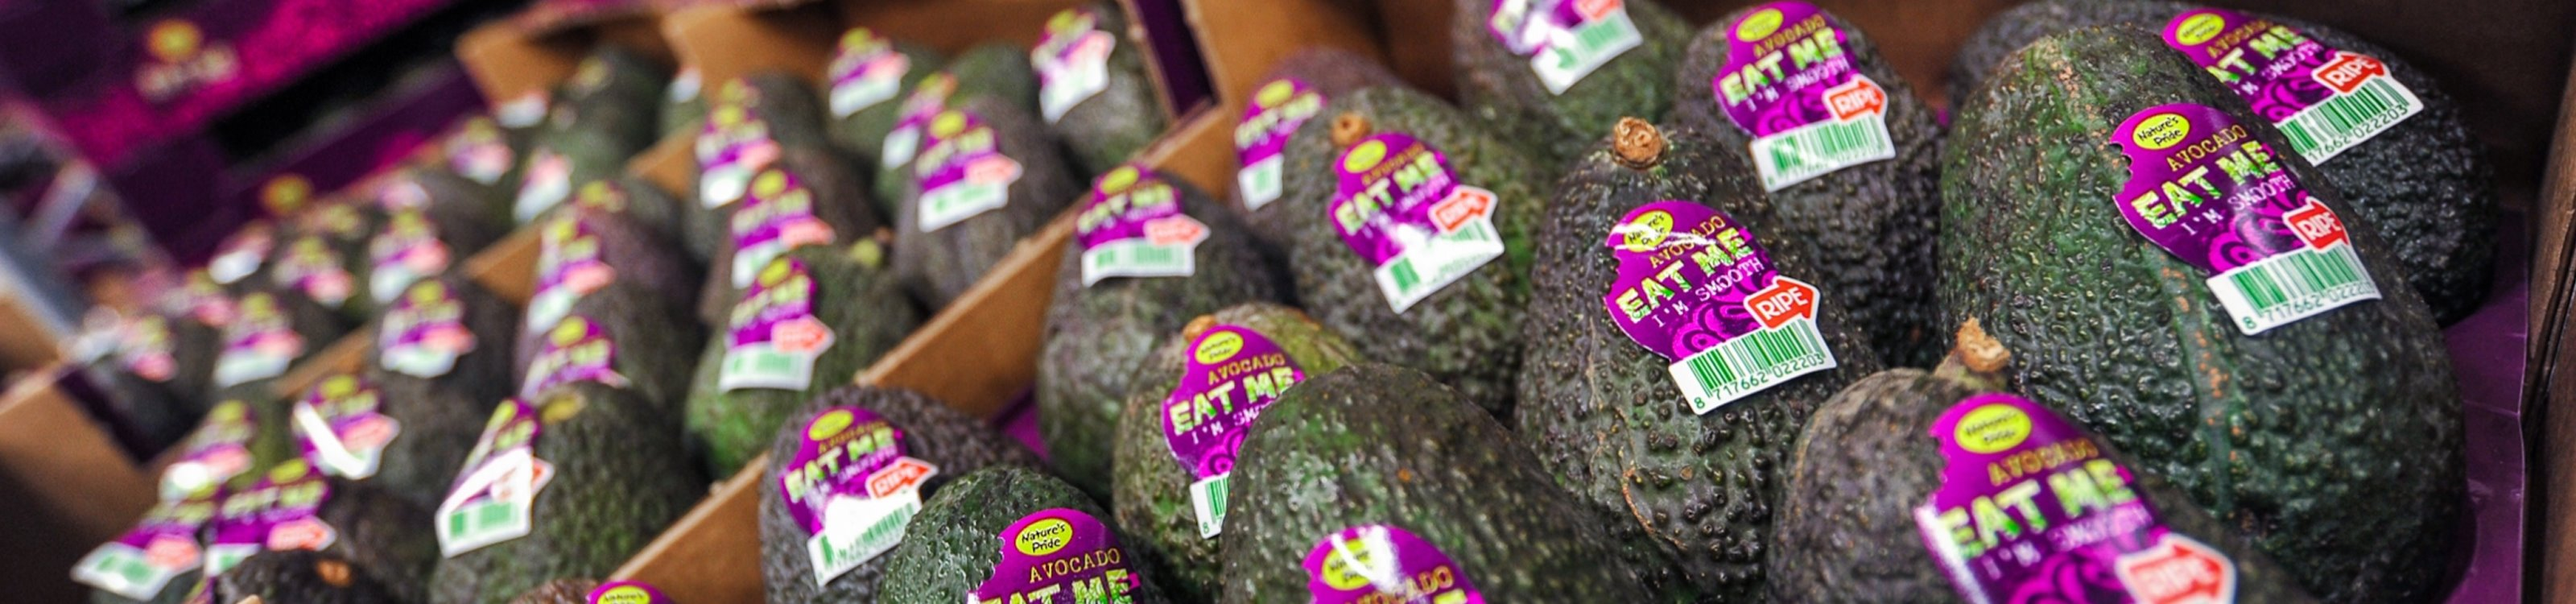 software-rijpen-ripening-avocado-erp-software-dynamics-natures-pride-scanning-dynamics-schouw.jpg